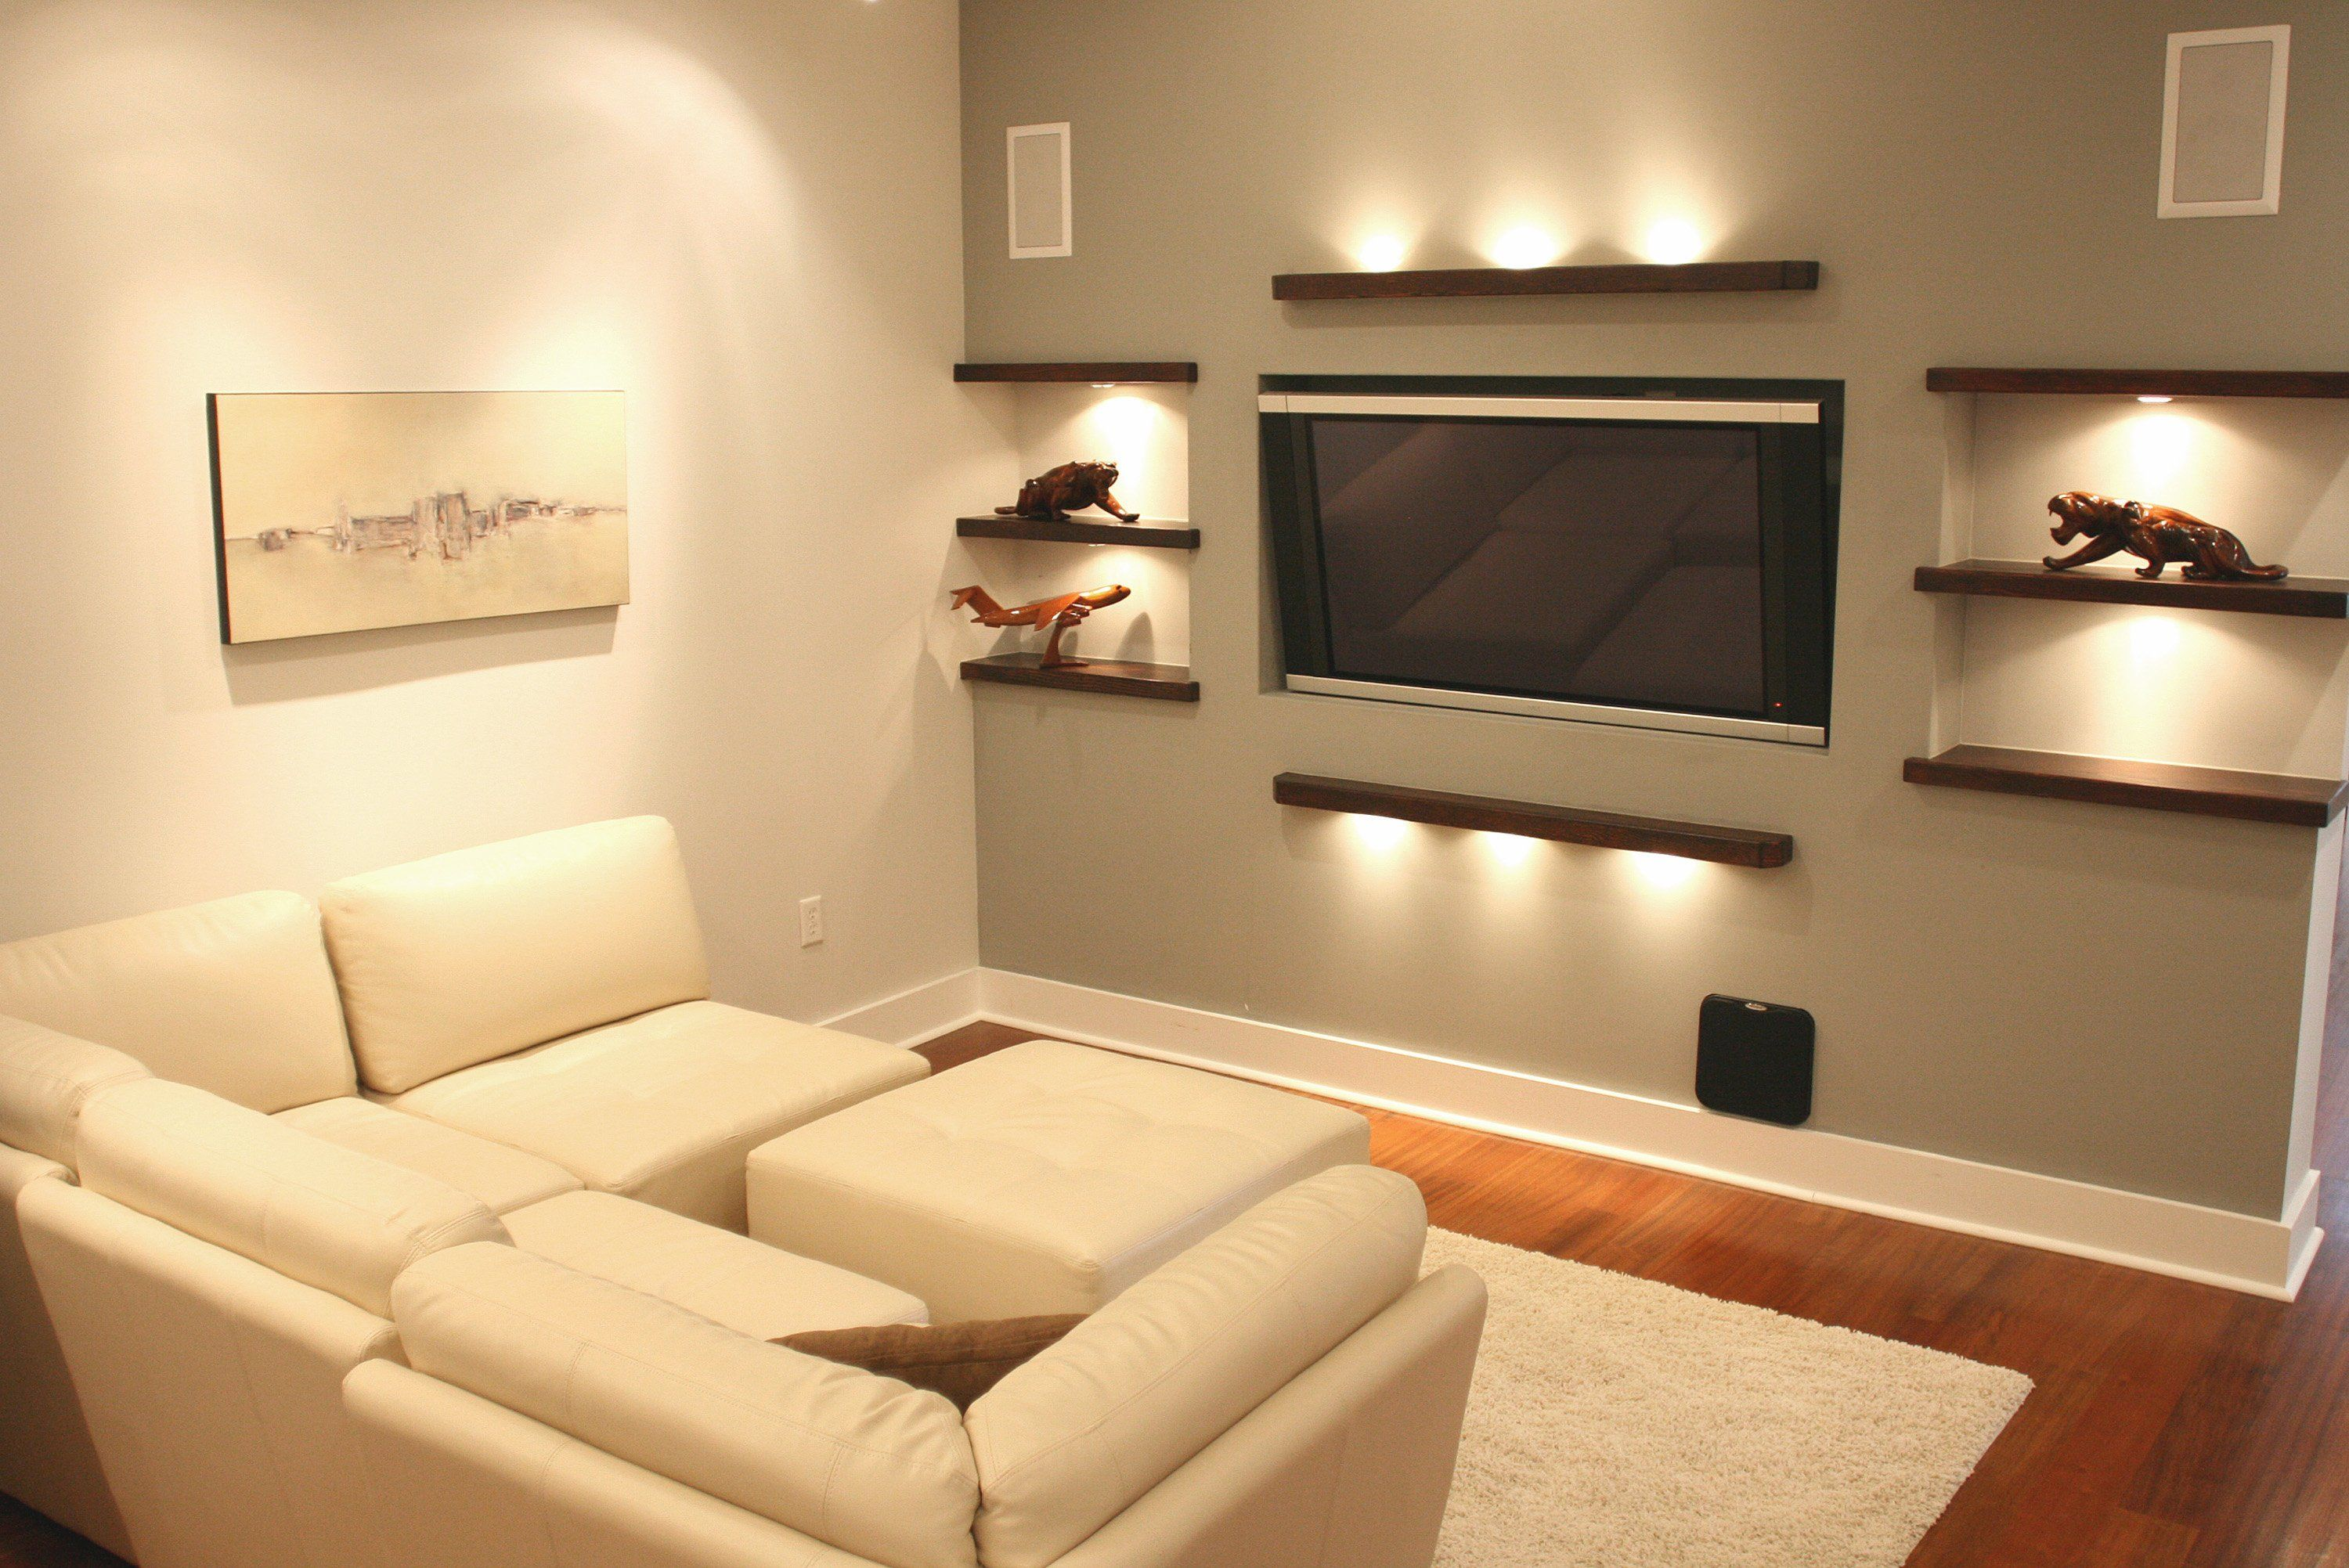 Captivating Apartment Living Room Decorating Ideas Using Wall Decor Concept  Within Maximize Of Grey Be Equipped Part 33